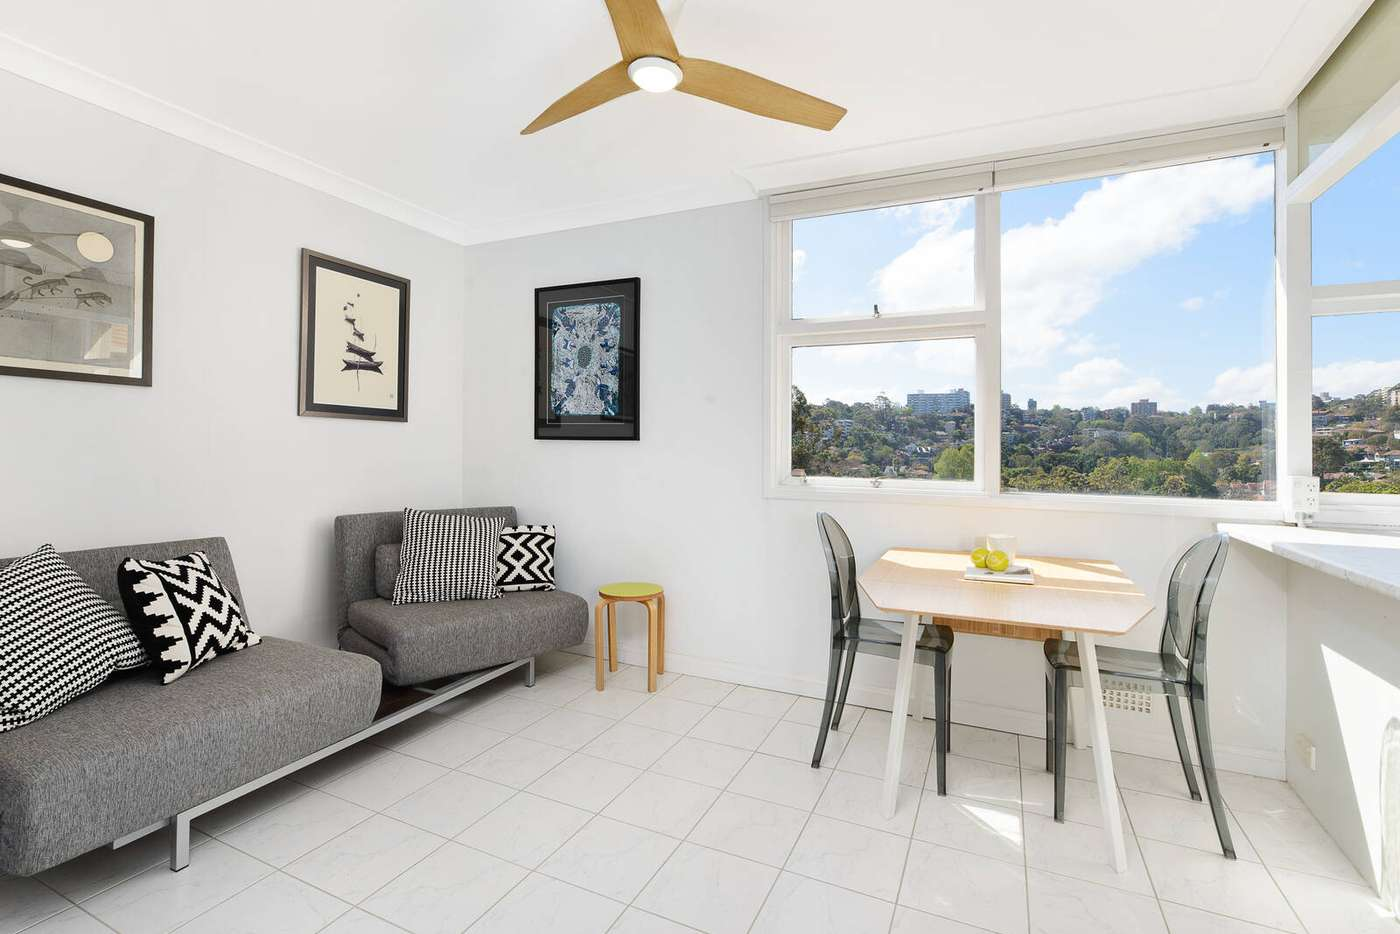 Main view of Homely studio listing, 610/22 Doris Street, North Sydney NSW 2060